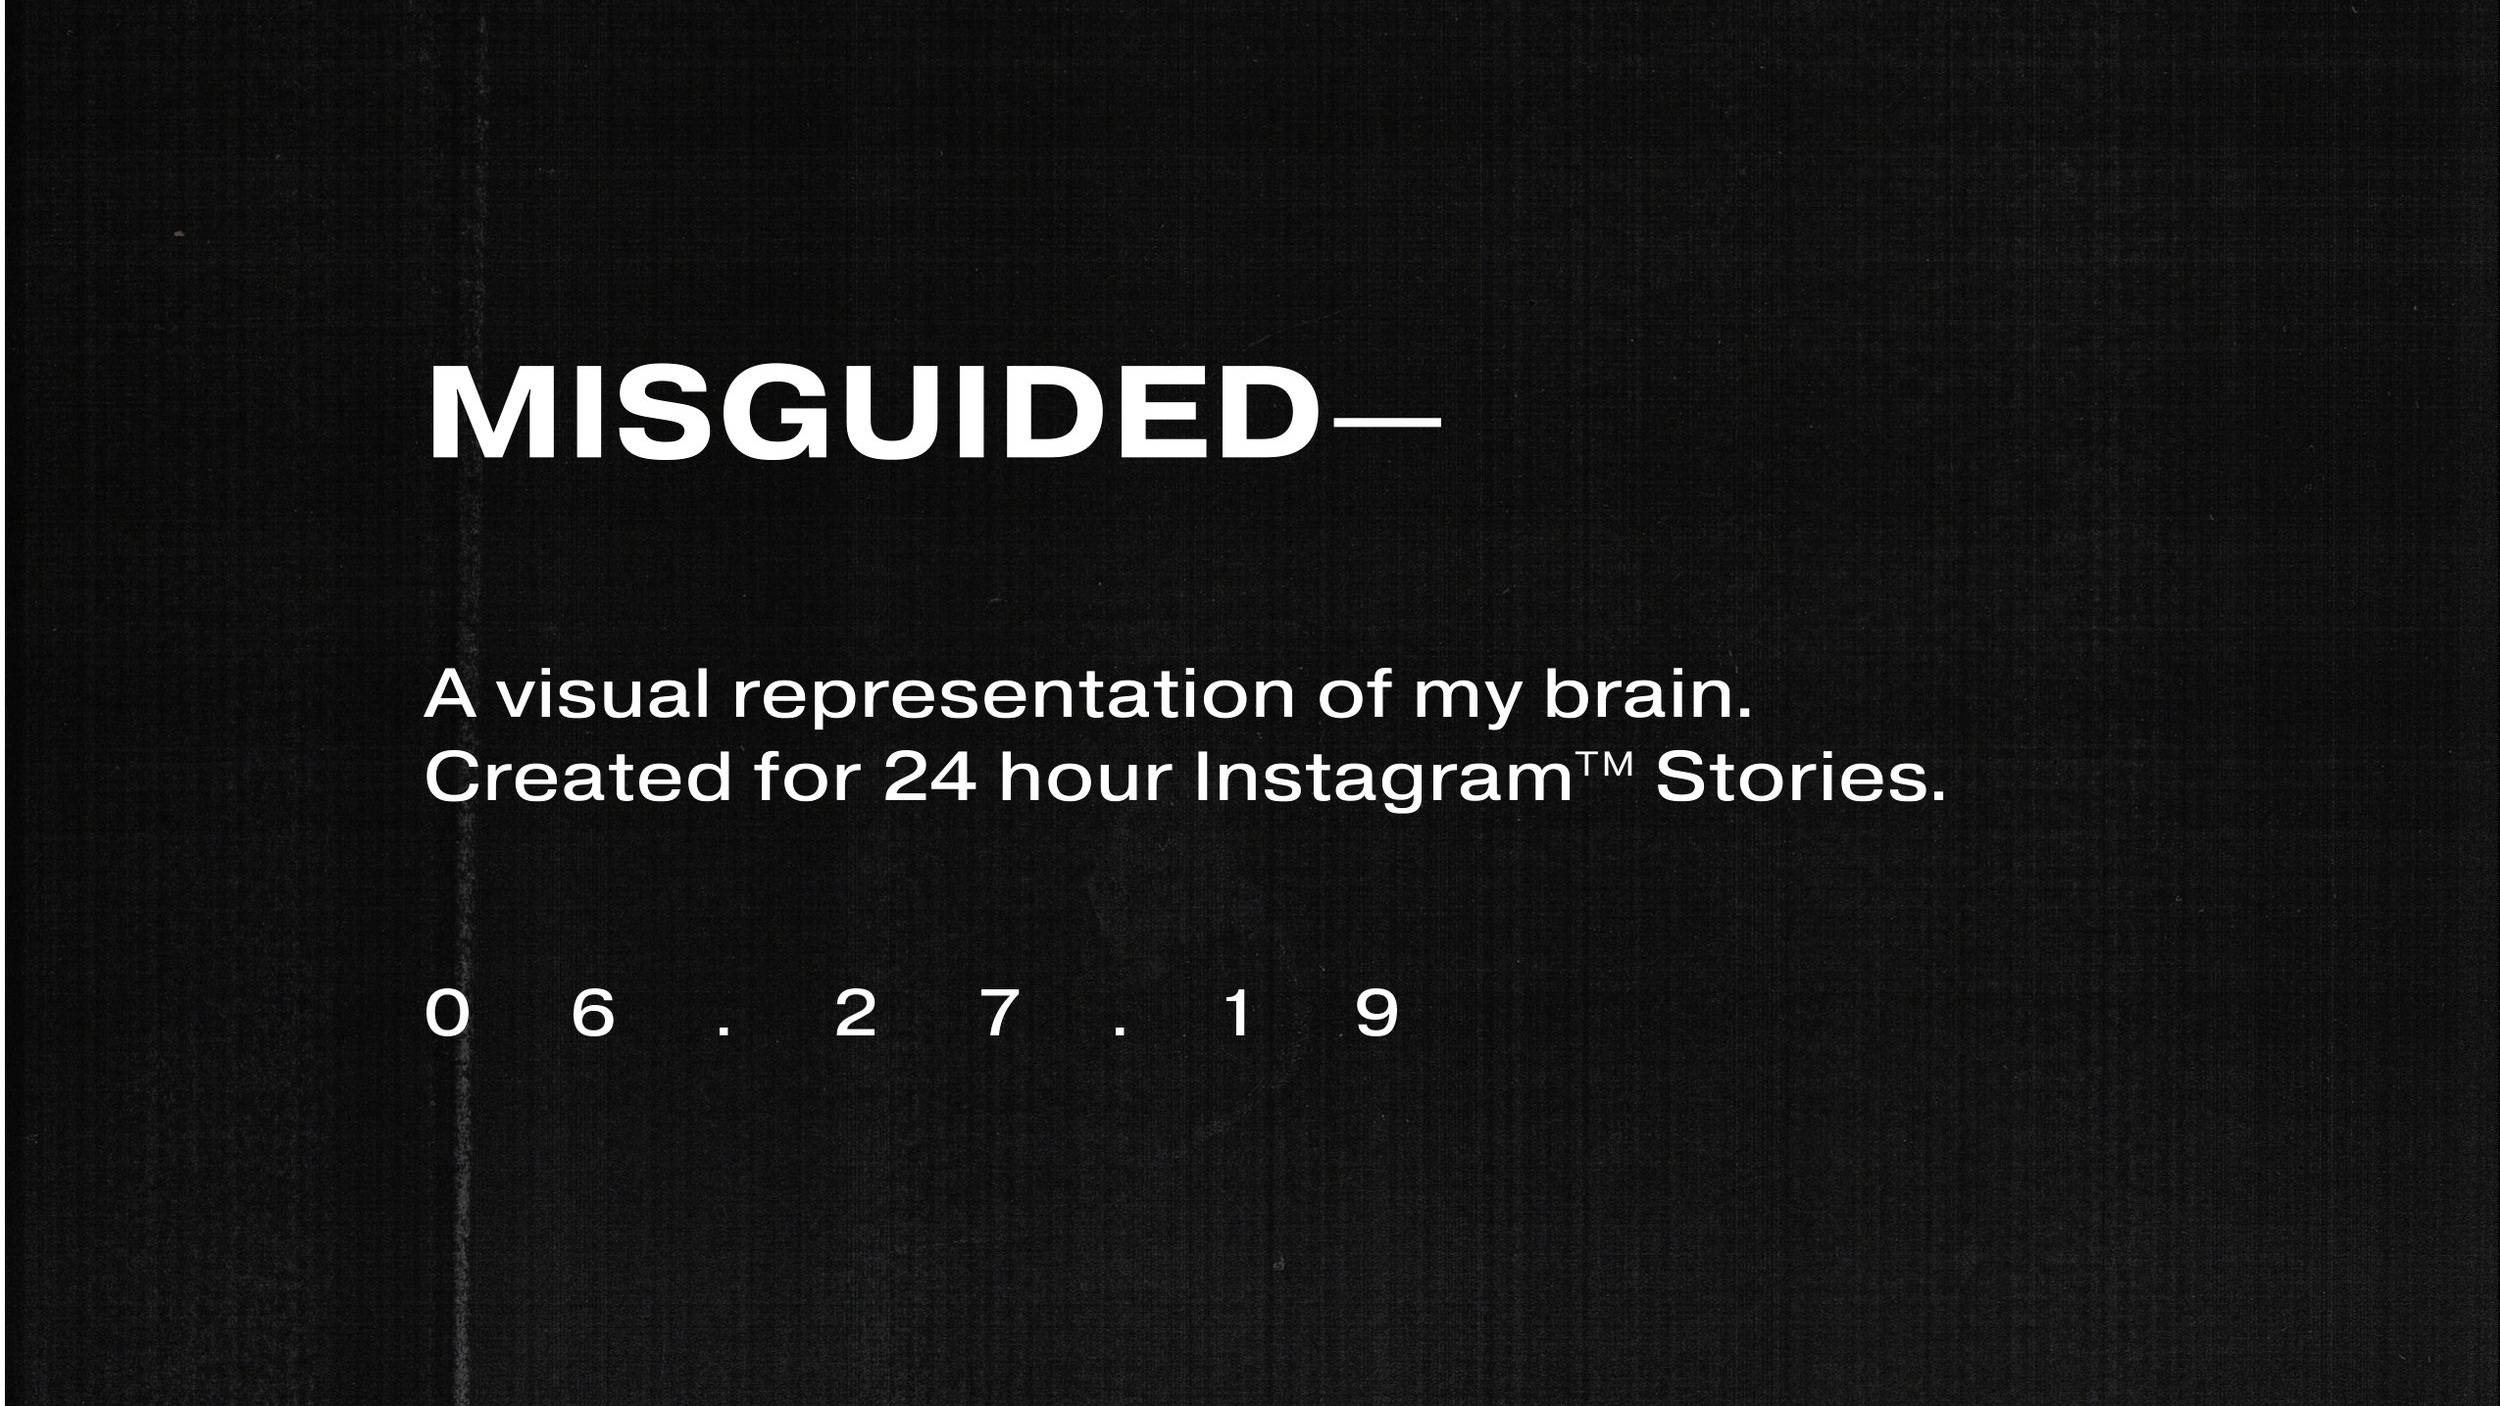 MISGUIDED_6.27.jpg